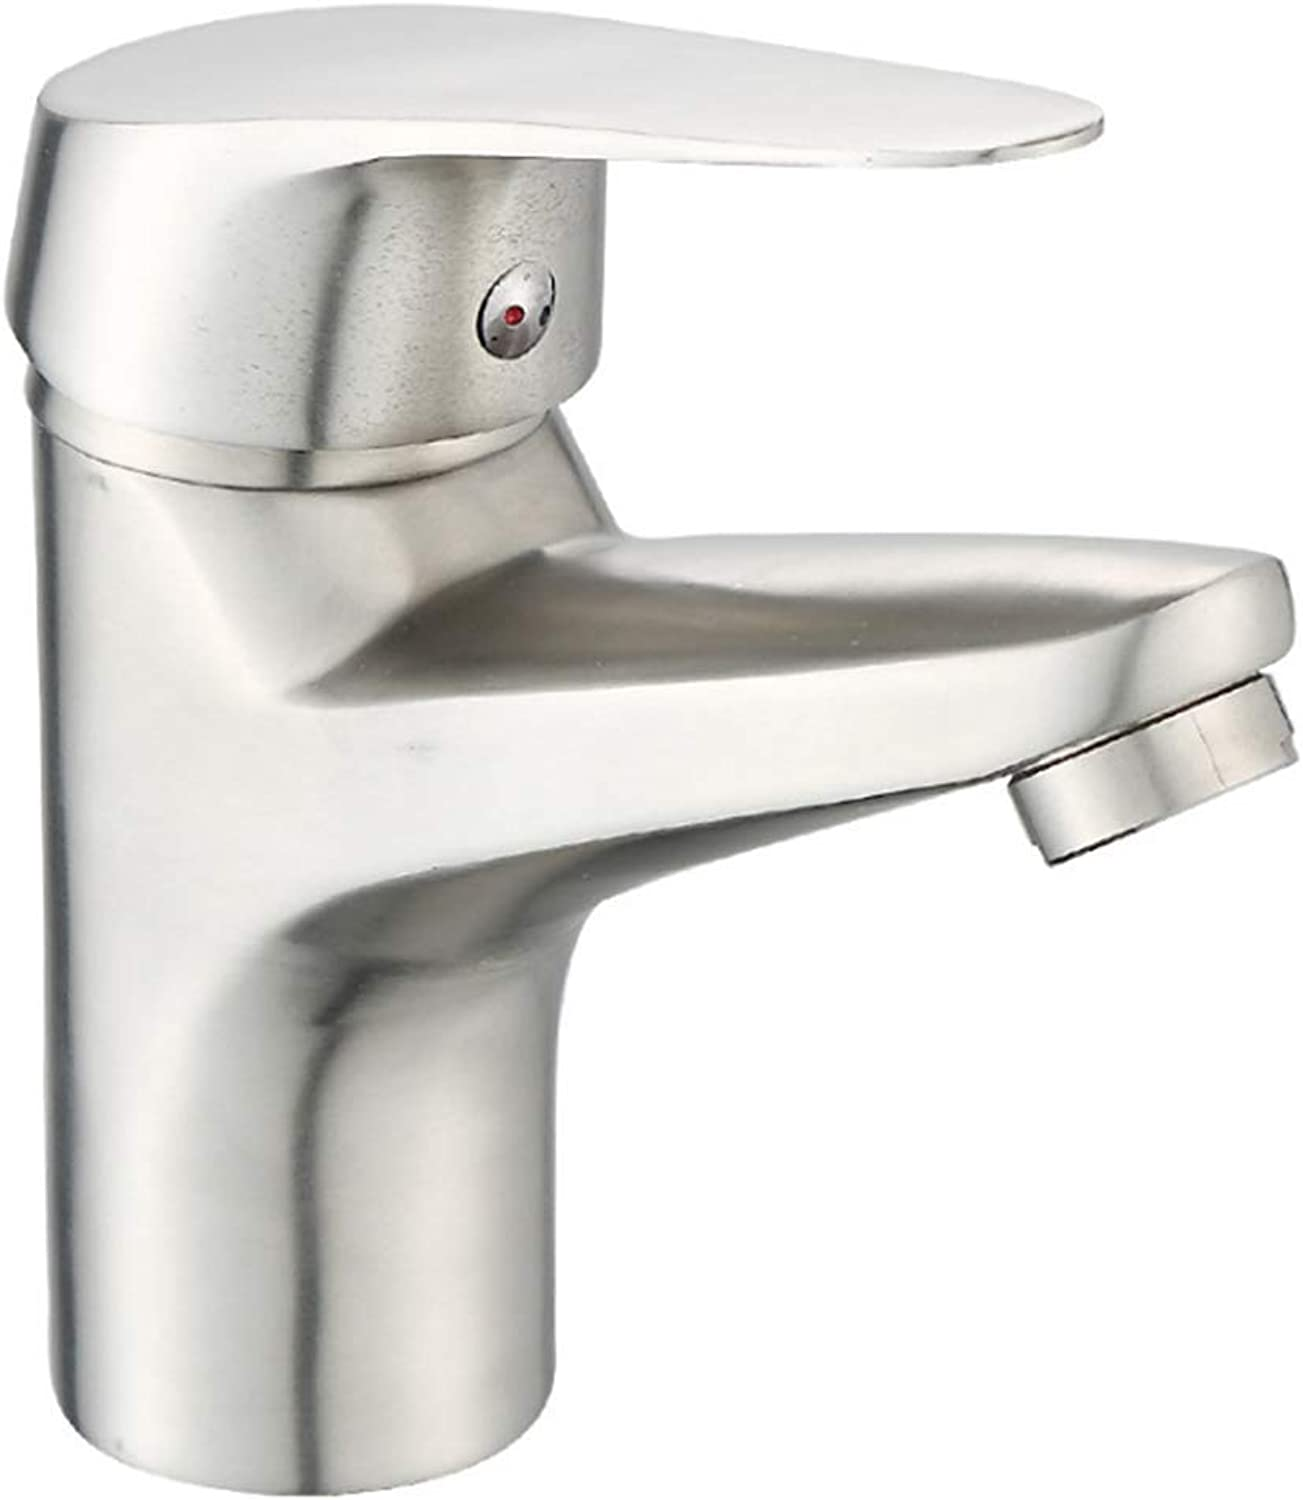 Counter Drinking Designer Archprecision Casting High-End Cold-Hot Water Mixing Valve for Washbasin